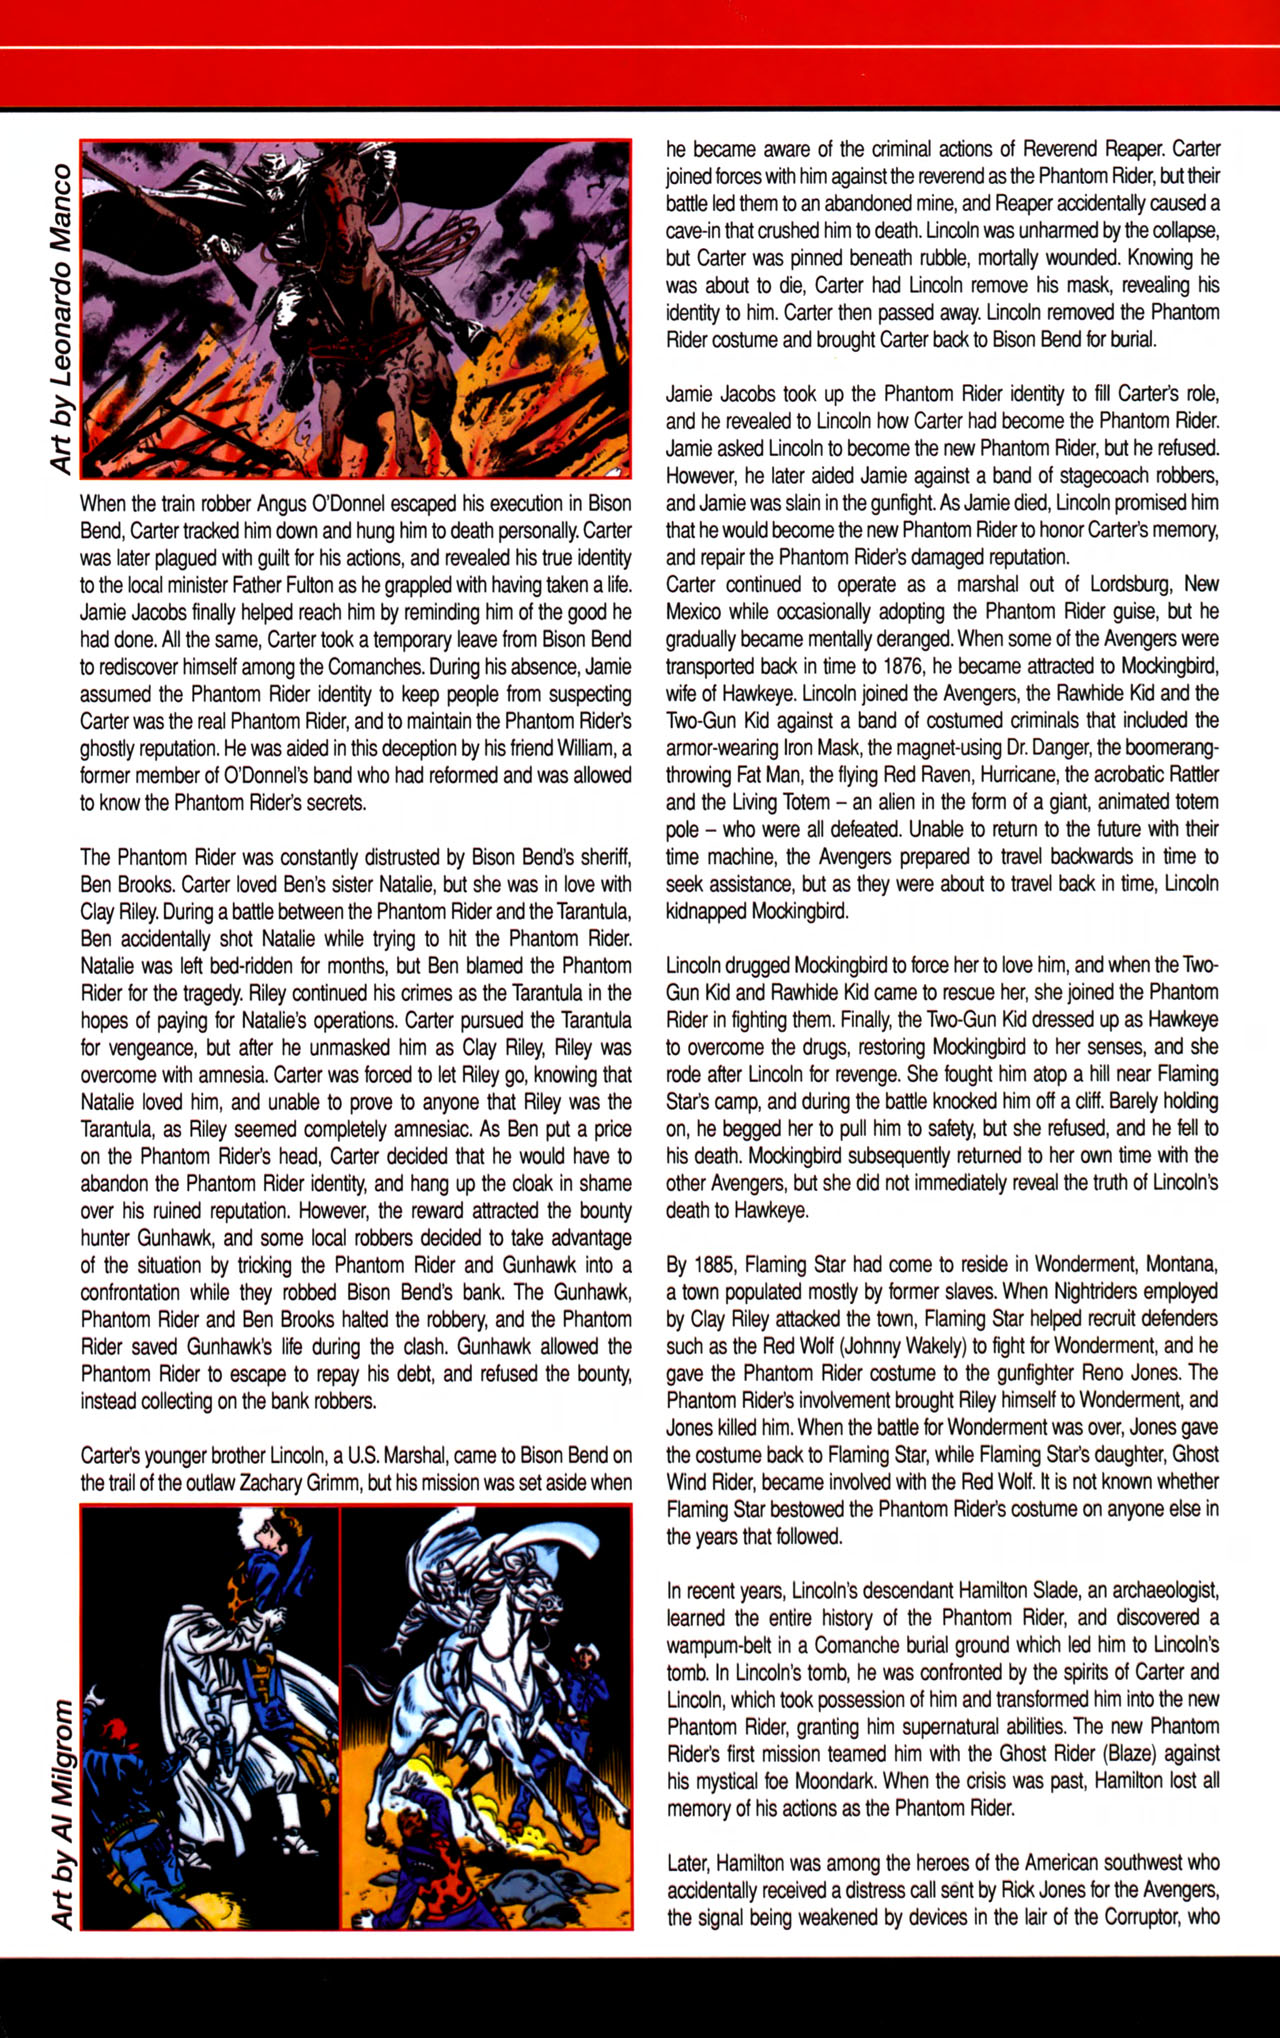 Read online All-New Official Handbook of the Marvel Universe A to Z comic -  Issue #8 - 39